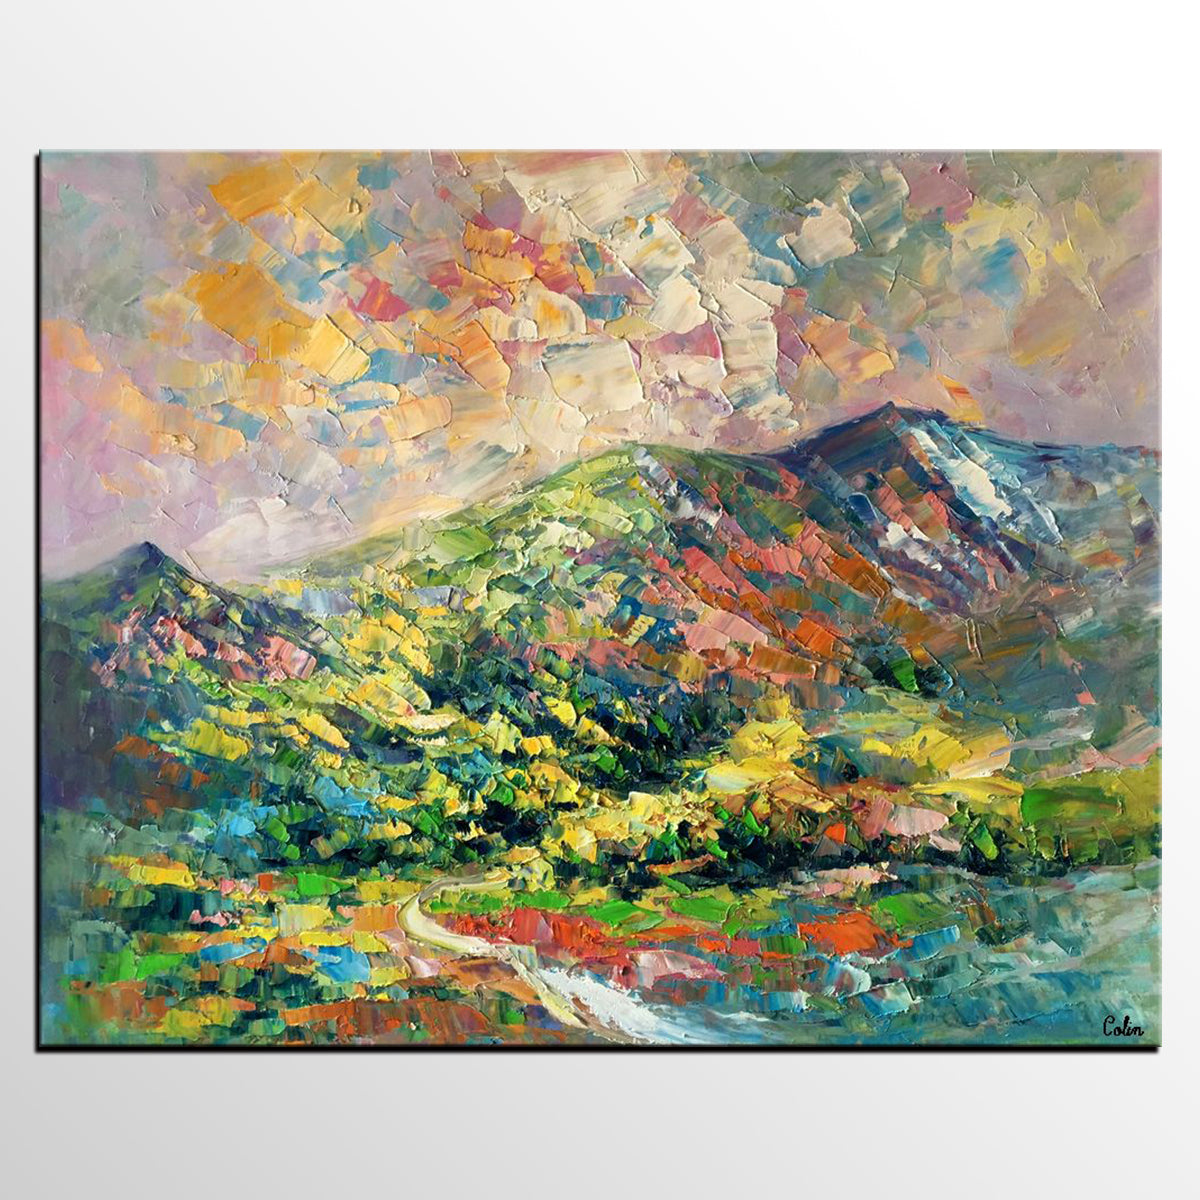 Abstract Art Painting Landscape Painting Oil Painting Abstract Art Original Artwork Canvas Painting